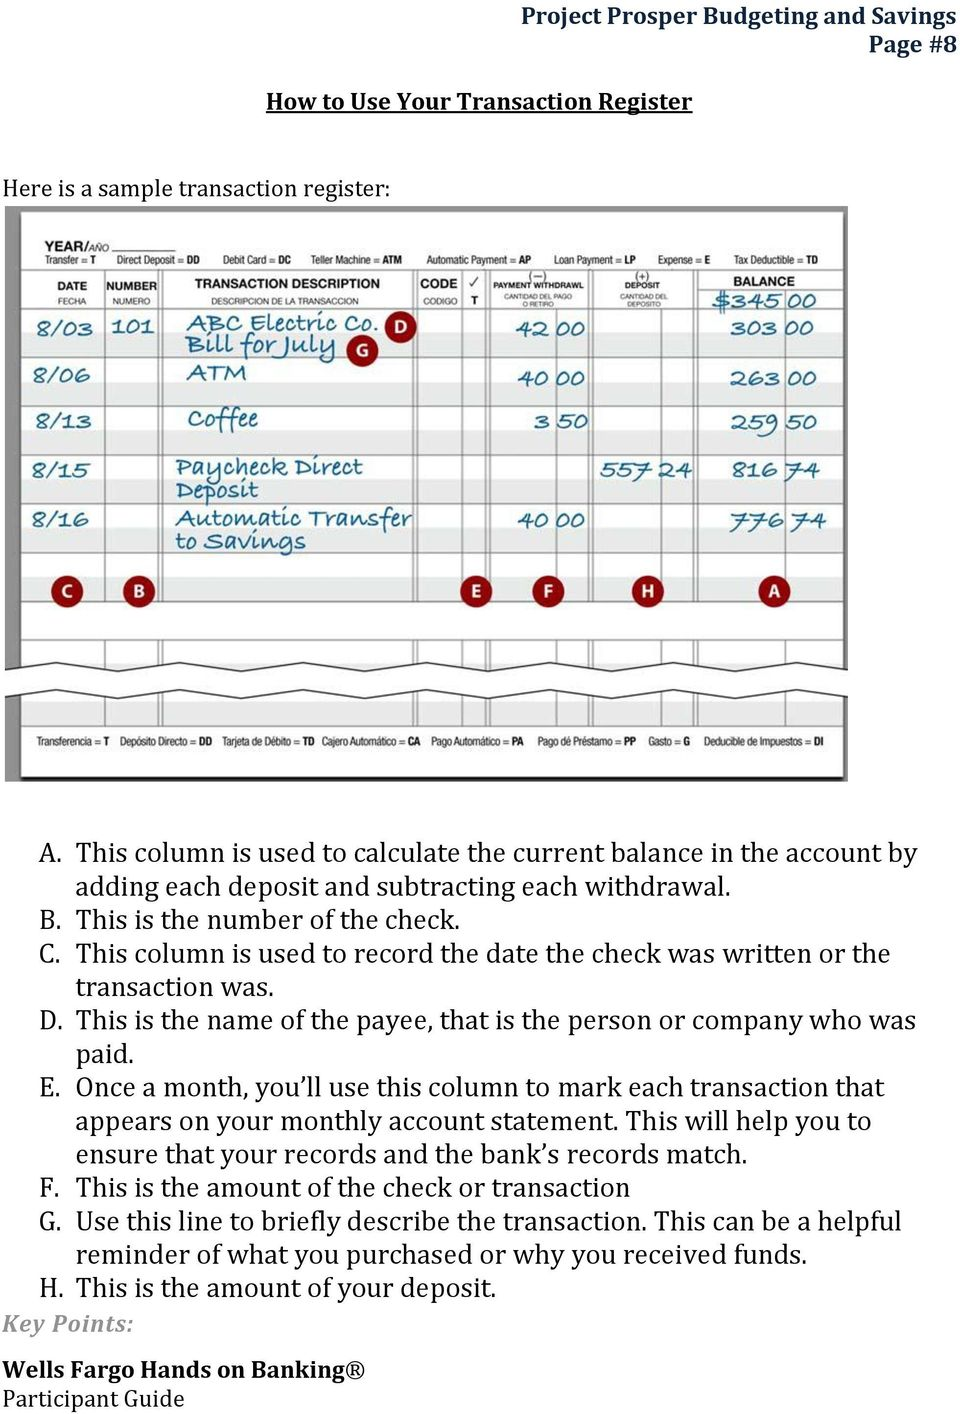 This column is used to record the date the check was written or the transaction was. D. This is the name of the payee, that is the person or company who was paid. E.